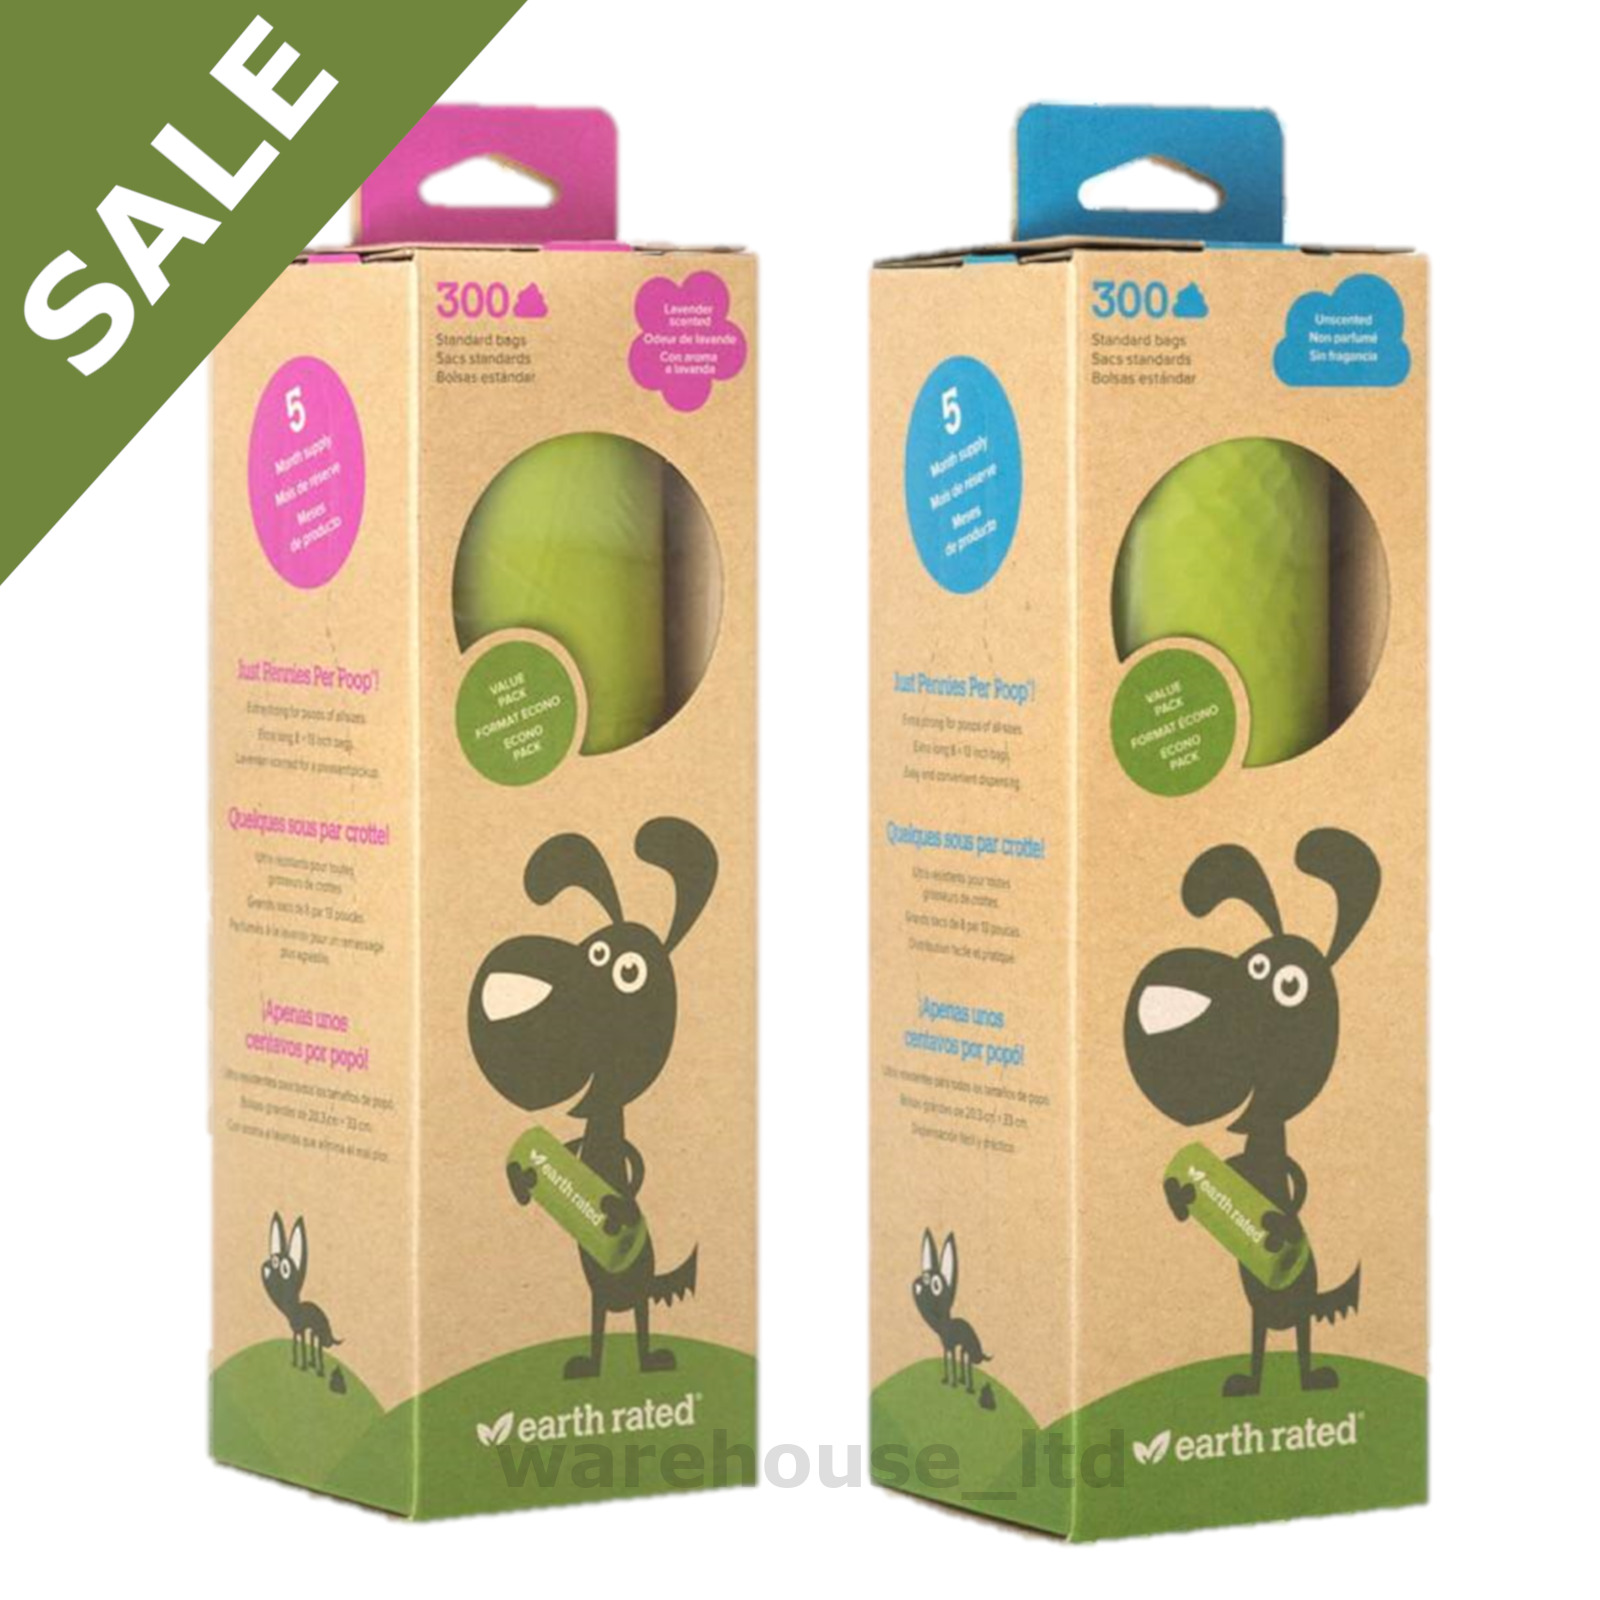 300 X Earth Rated Biodegradable Dog Waste Bags Lavender Scented Poo 1 Of 3 See More